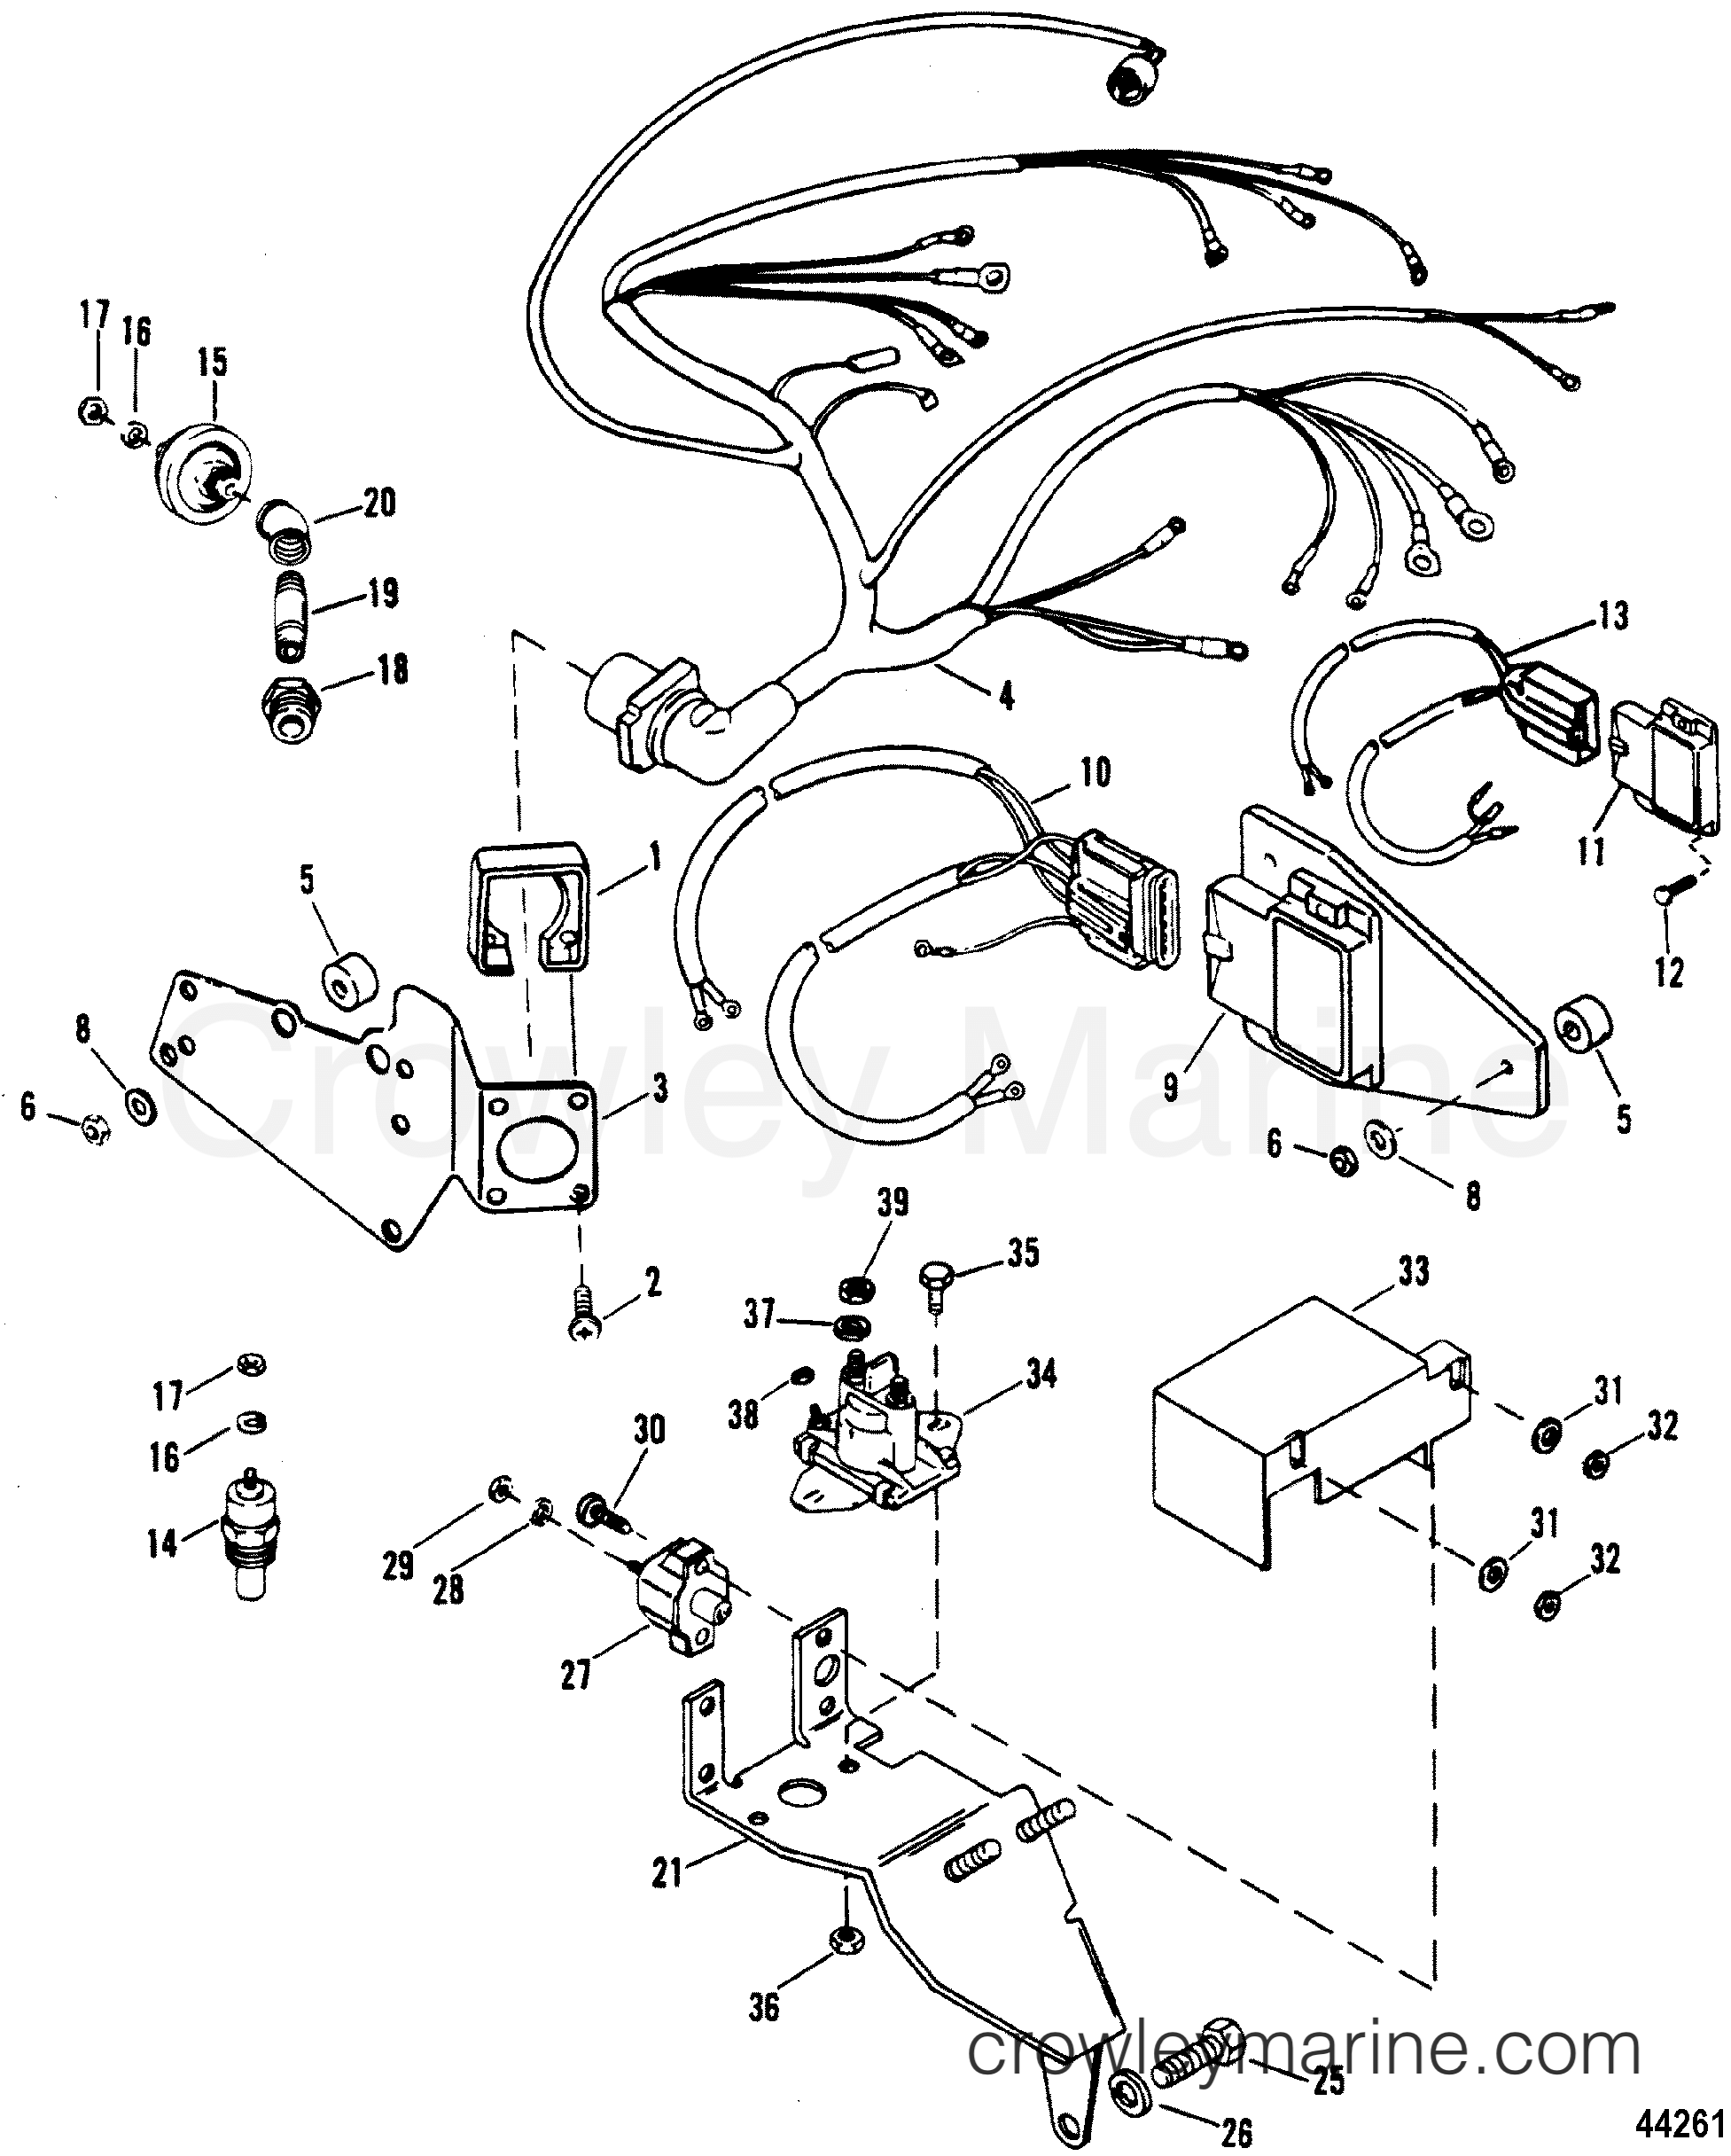 Mercruiser Thunderbolt Iv Ignition Module Wiring Diagram